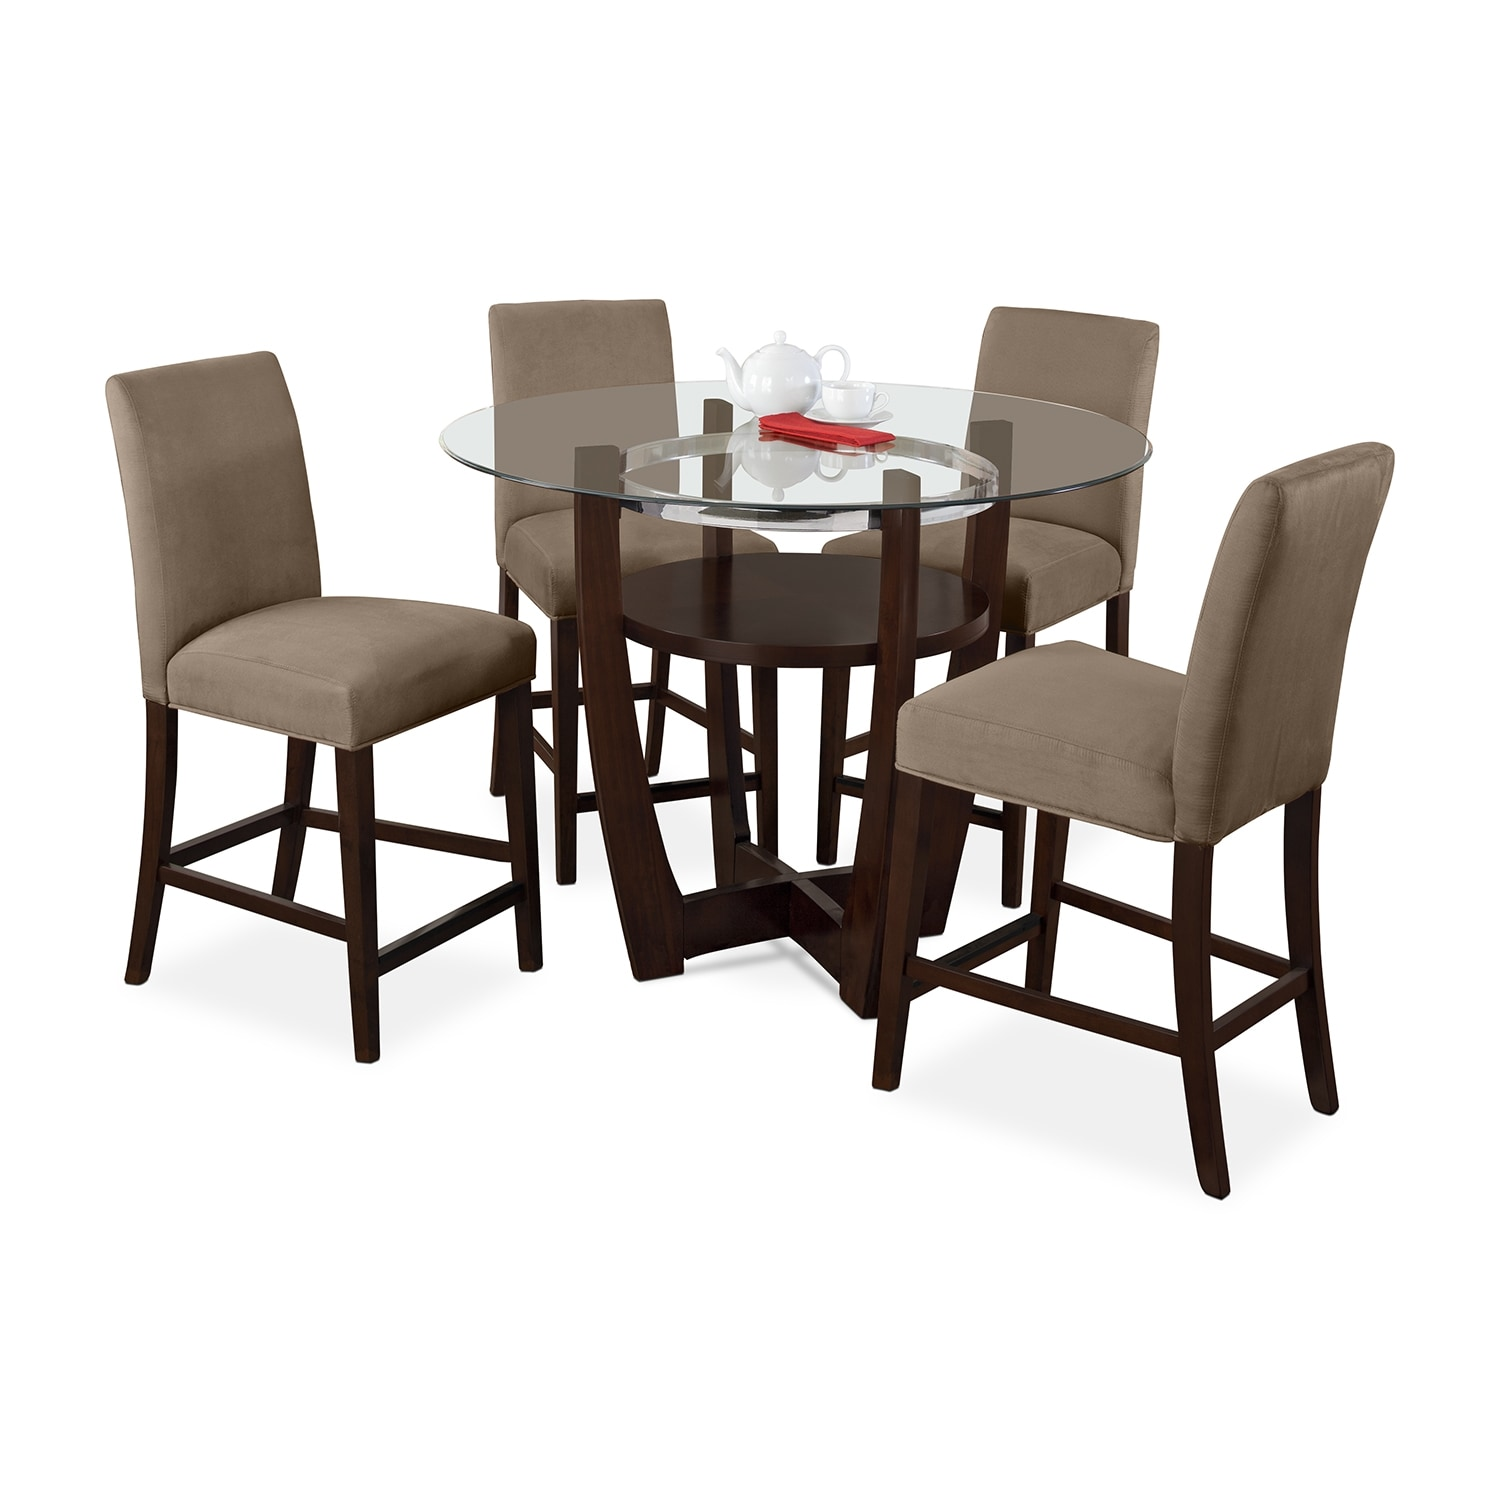 Alcove Counter-Height Dinette with Four Side Chairs - Beige